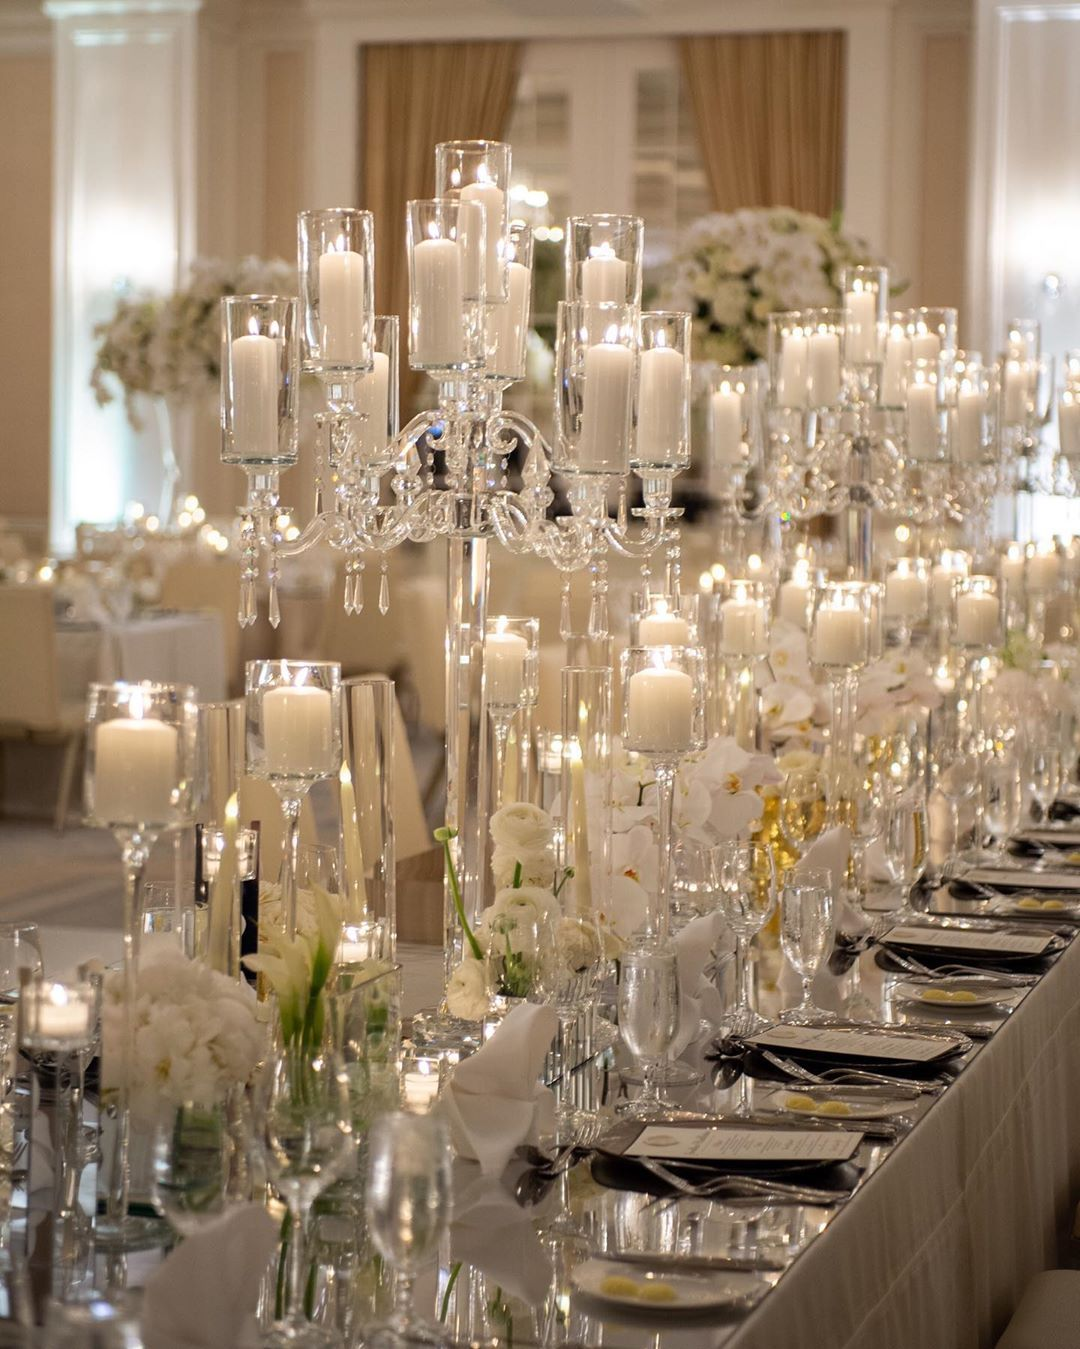 Edge Design Group Atlanta On Instagram A Well Designed Bridal Estate Combines Multiple E Crystal Centerpieces Wedding Crystal Candelabra Night Time Wedding